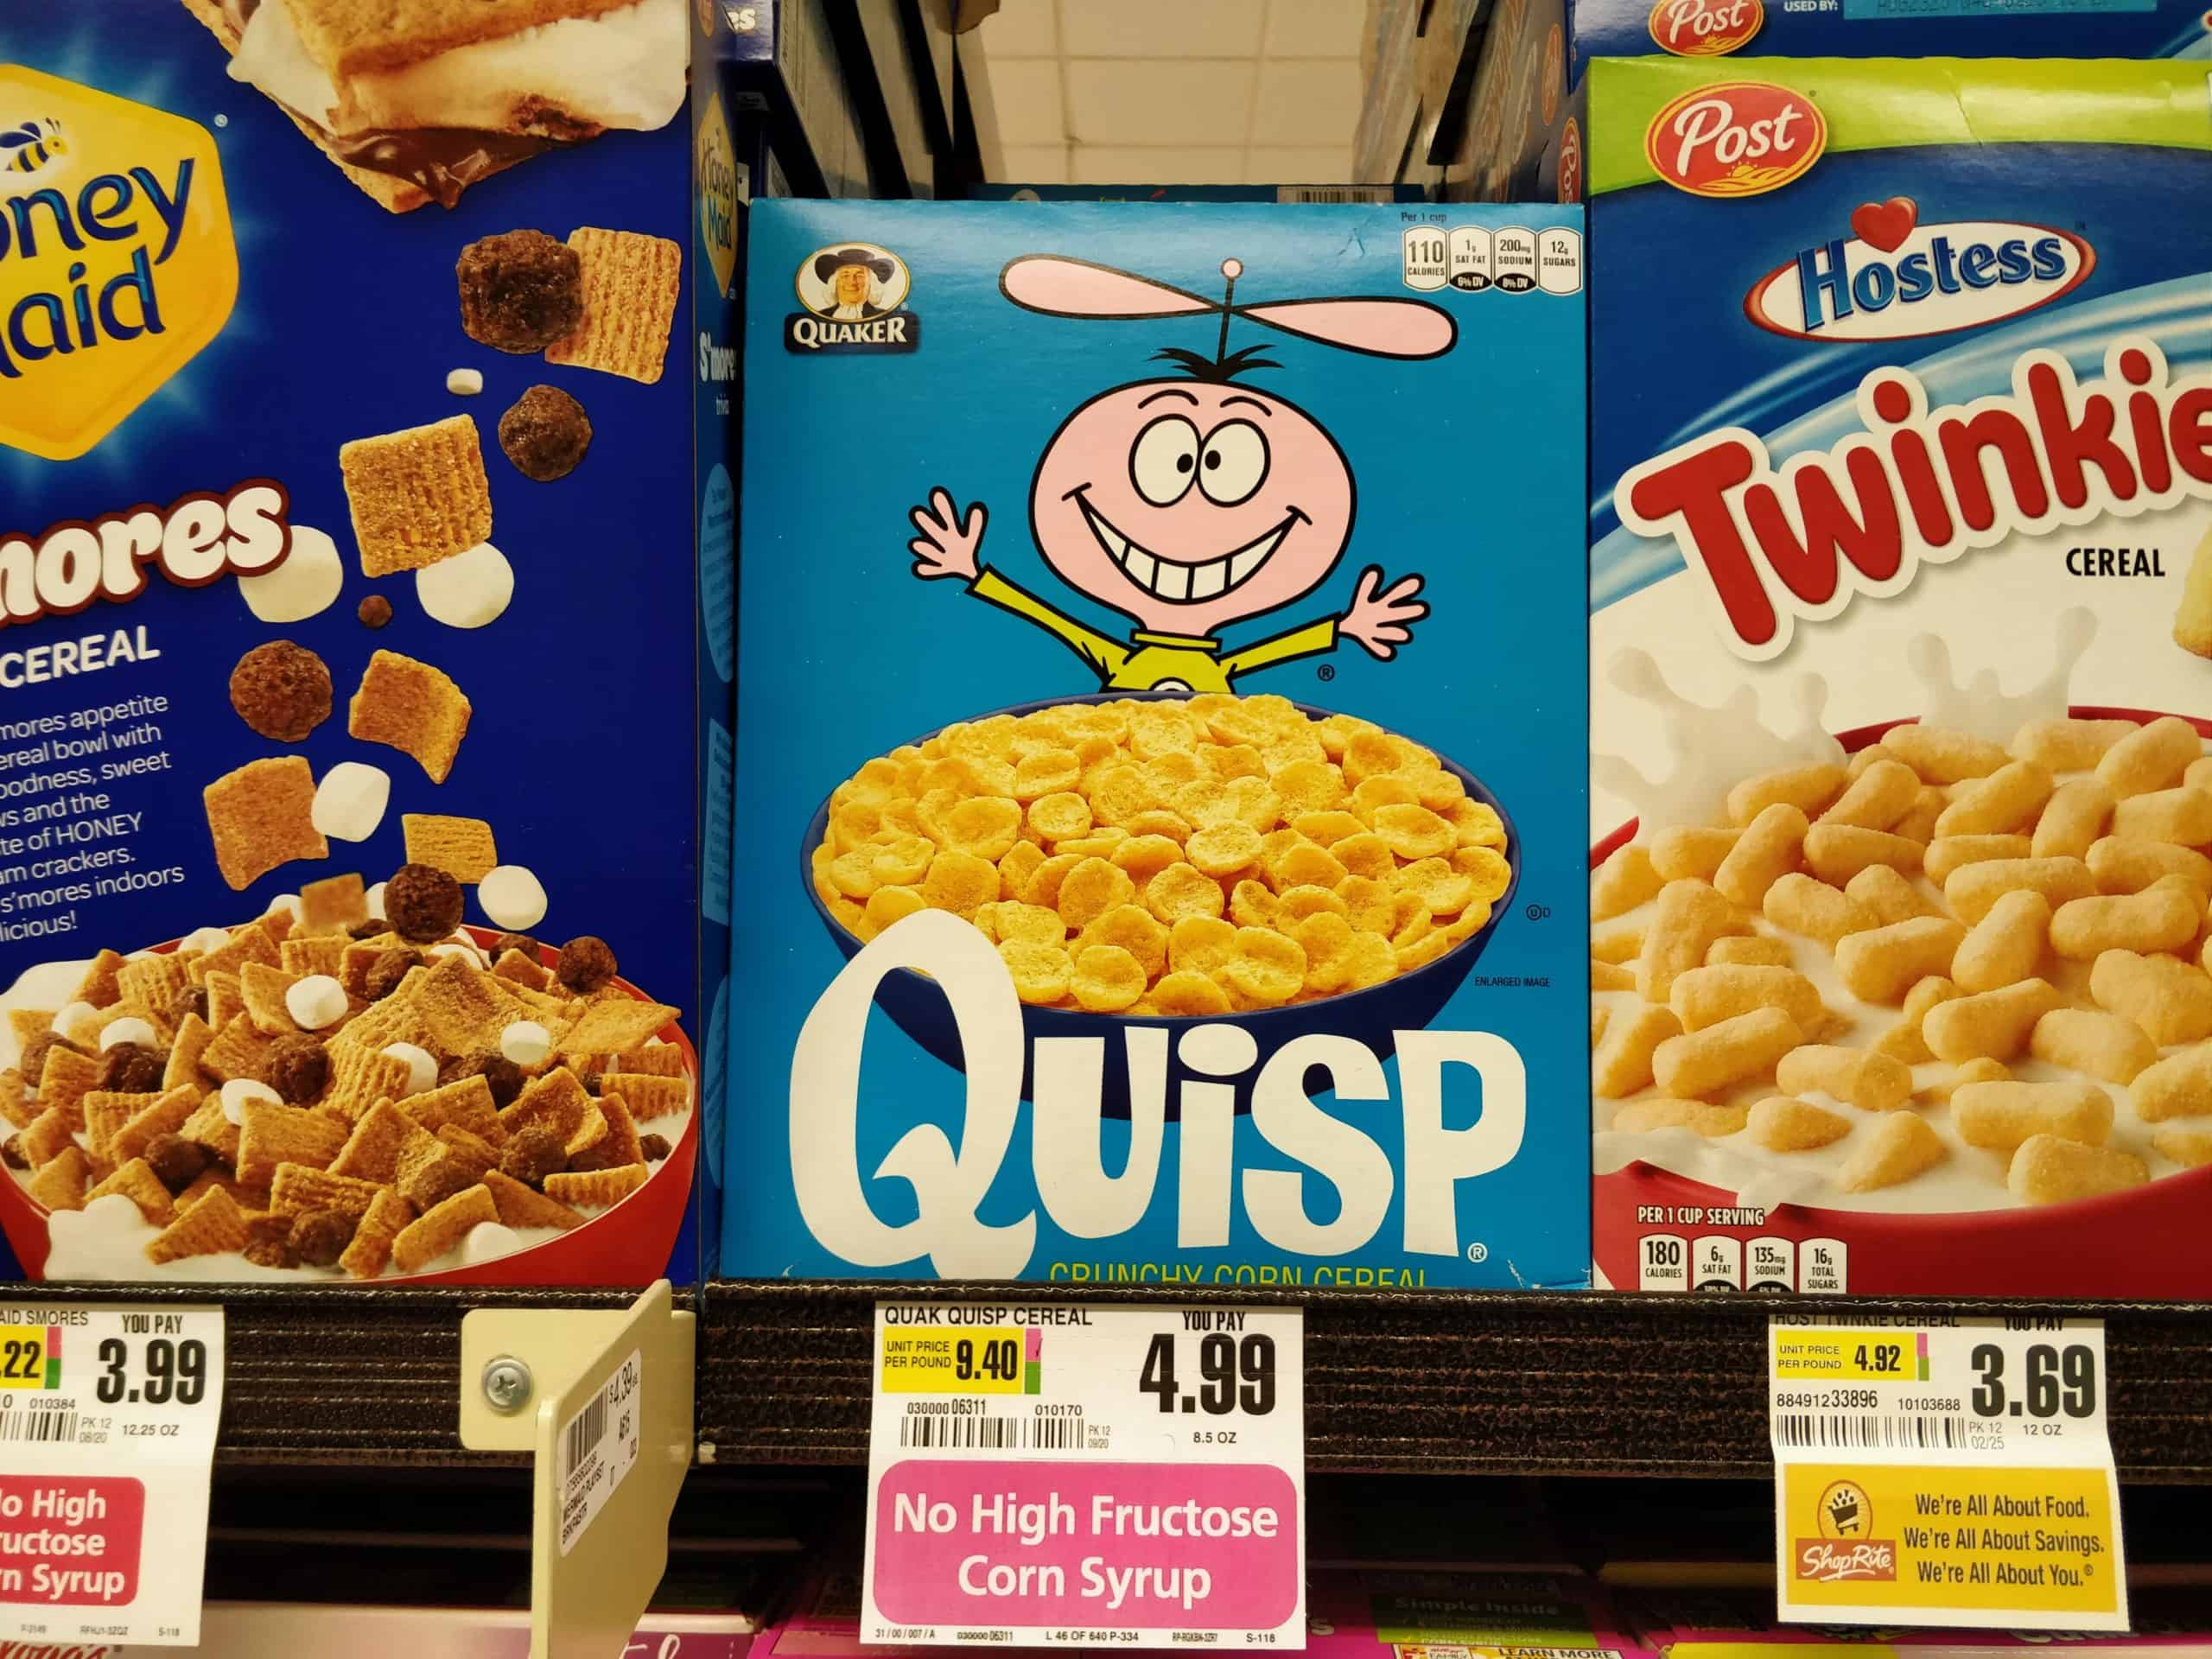 Quisp Cereal for sale at ShopRite in New Jersey